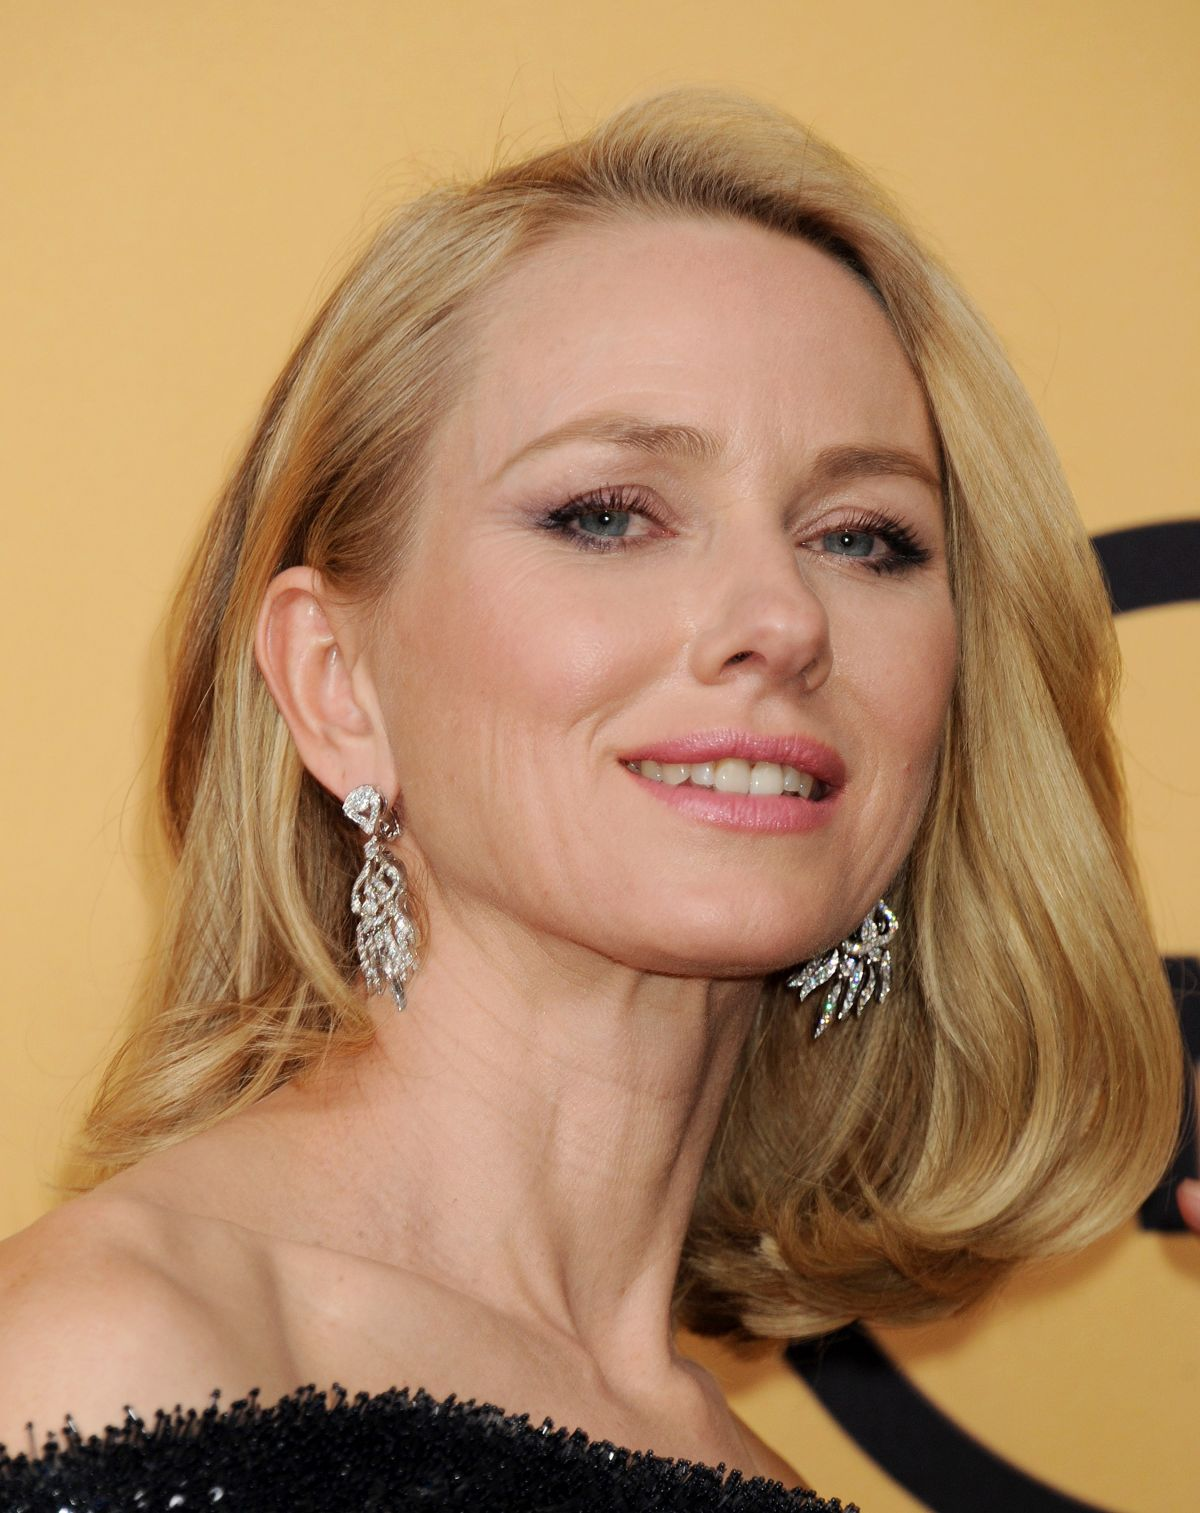 NAOMI WATTS at 2015 Screen Actor Guild Awards in Los Angeles ... Naomi Watts